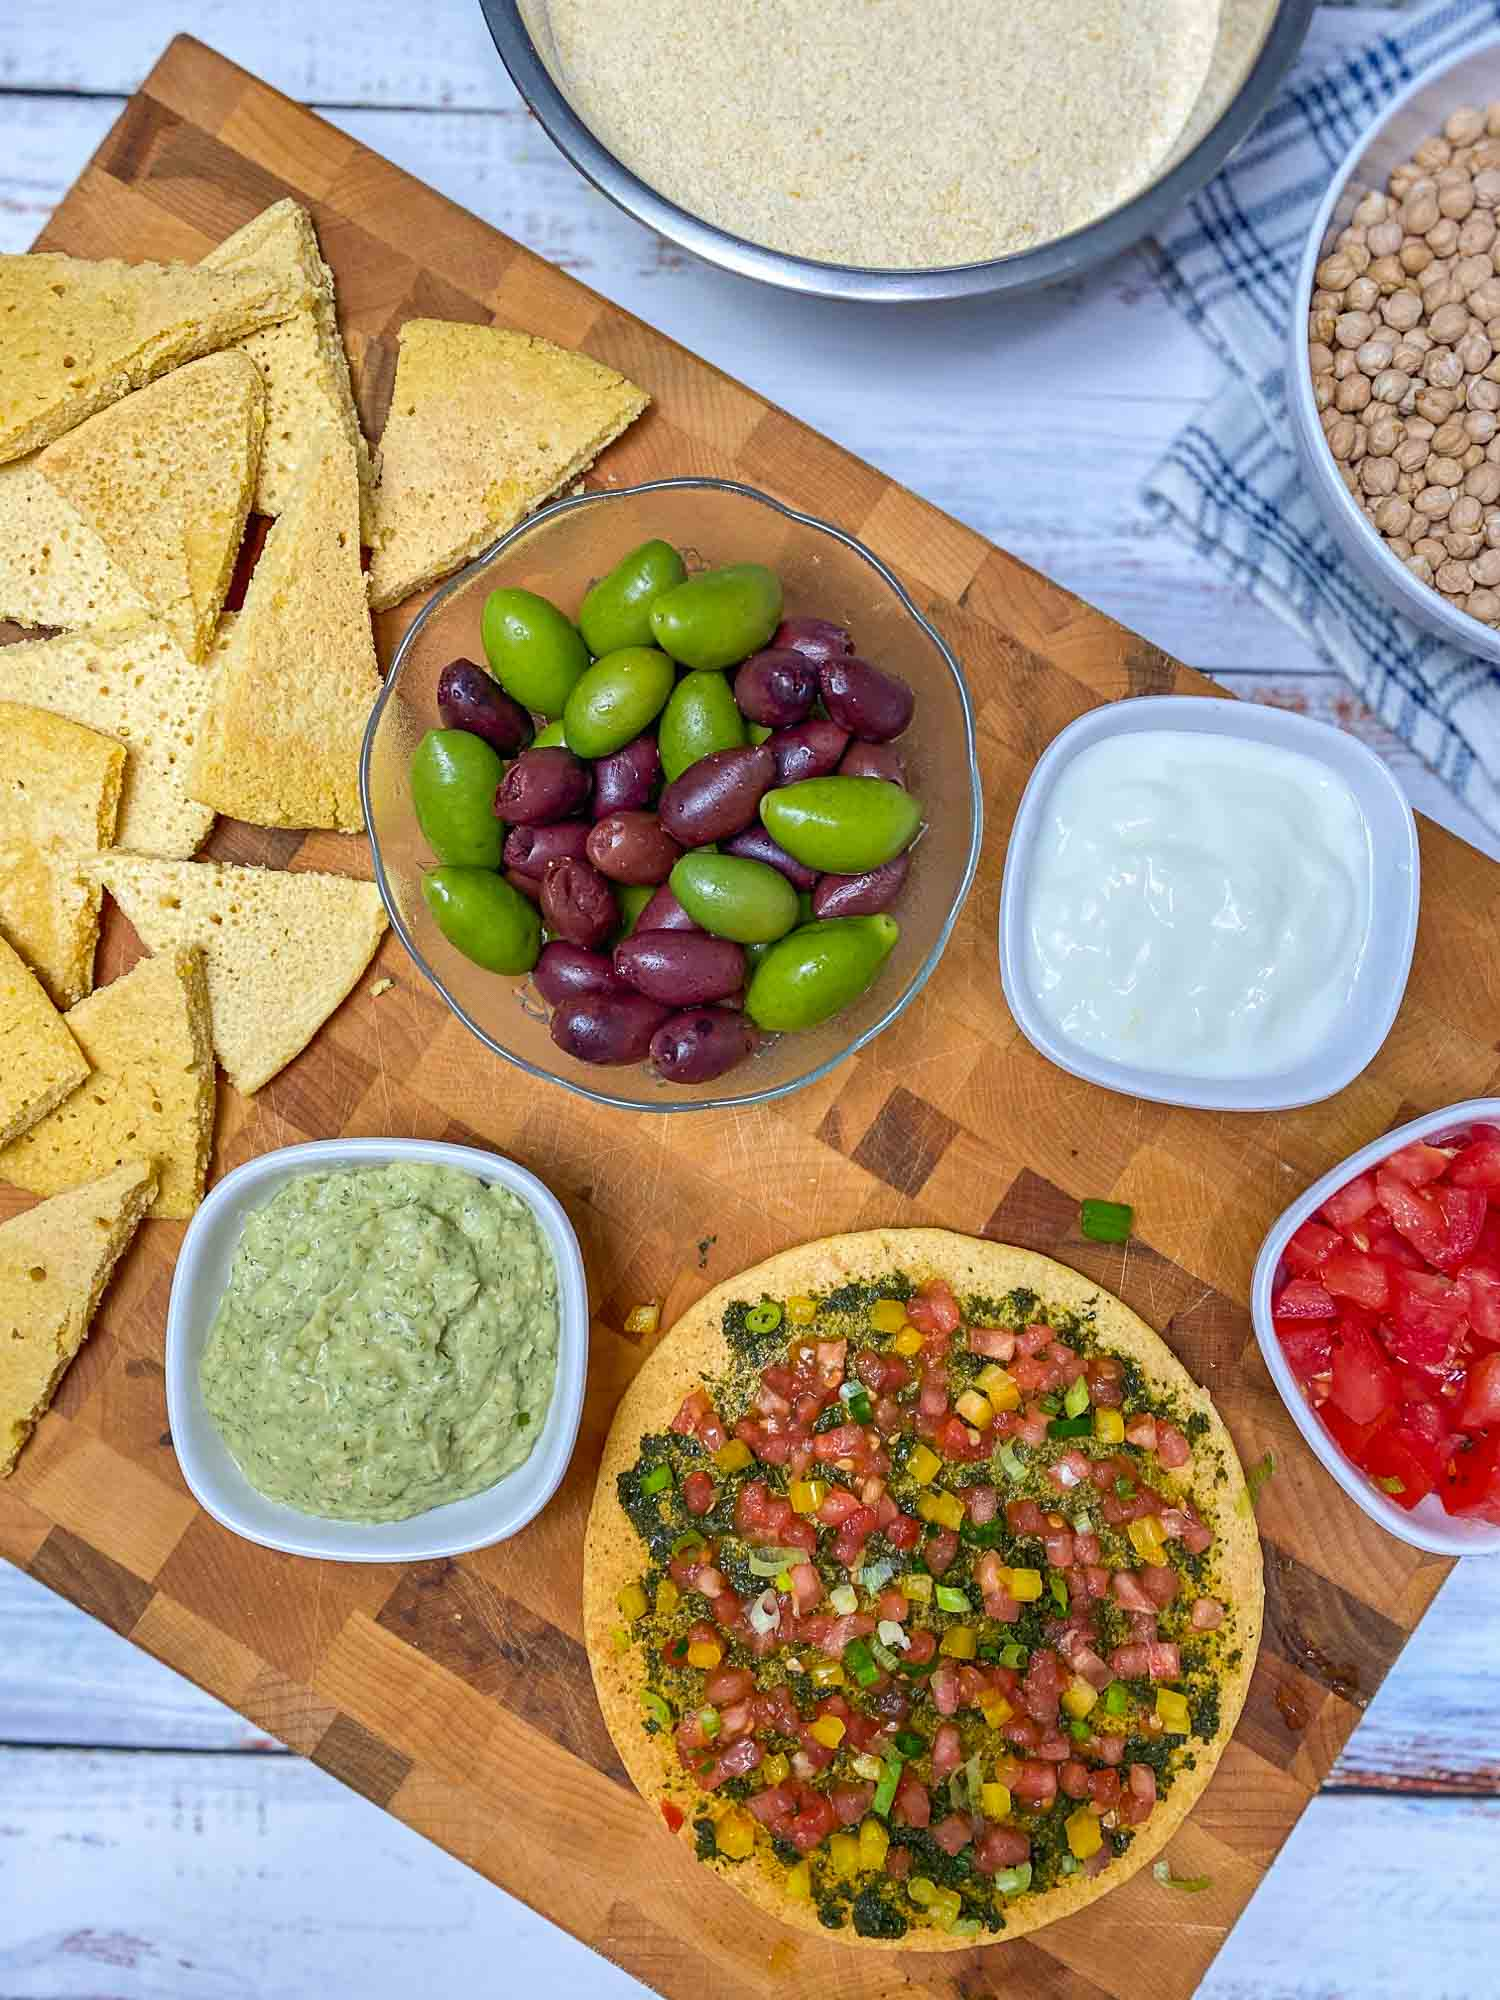 cutting board with pizza, pita wedges, dips and olives